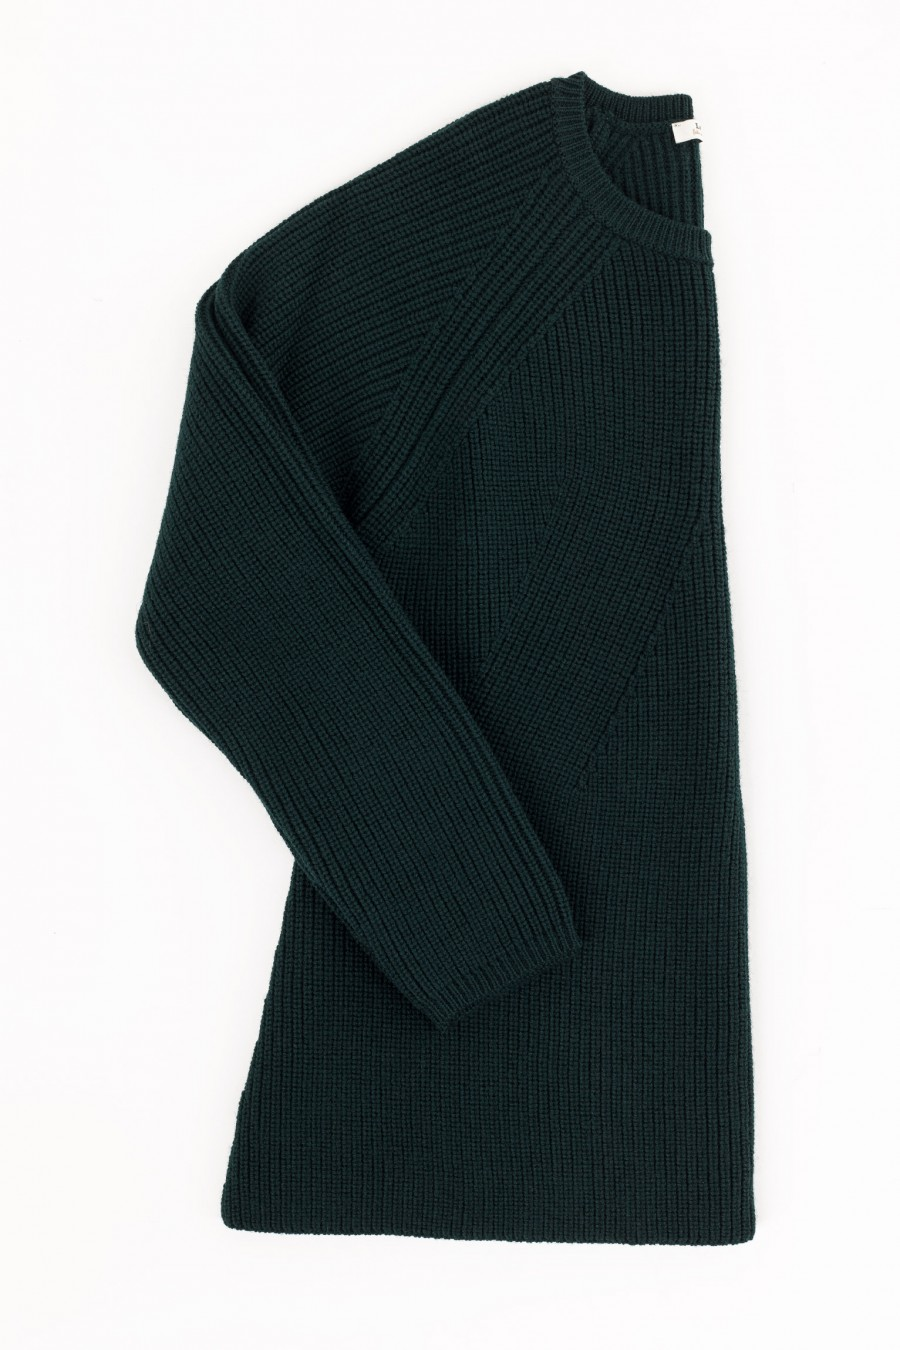 Wool dark green pullover